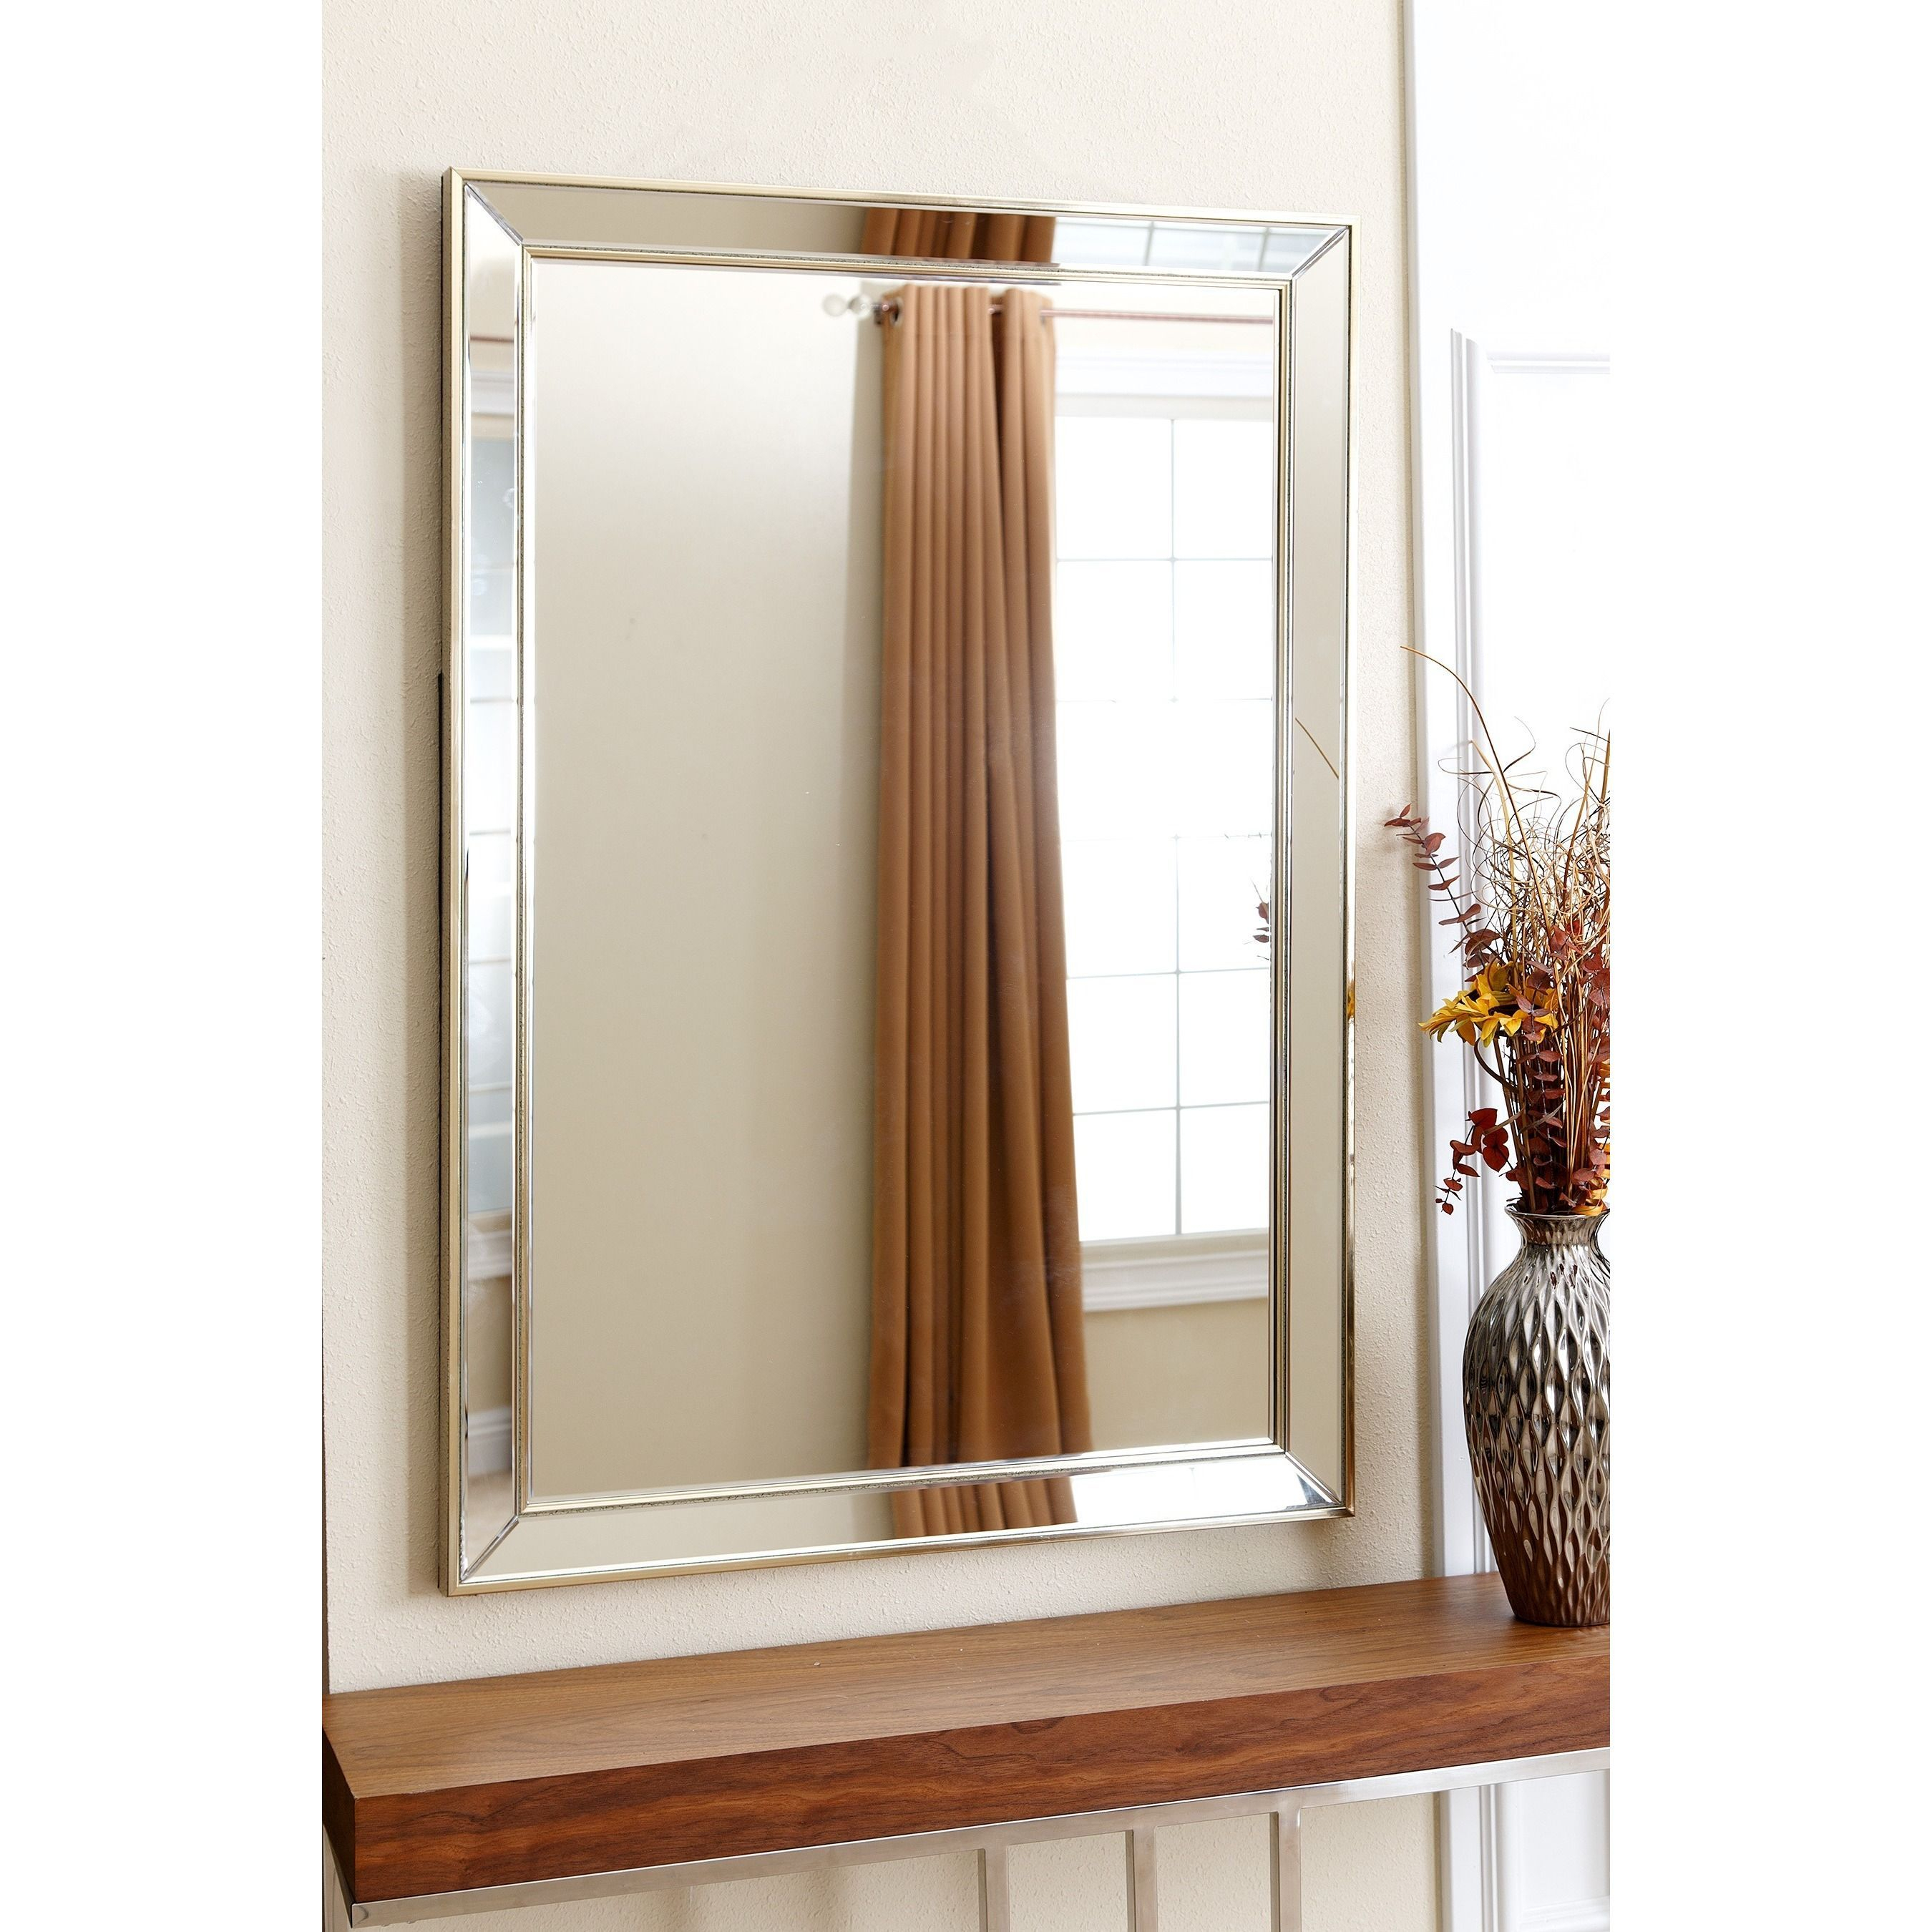 Li>Give Your Home Or Office A New Look With This Great Regarding Elevate Wall Mirrors (Image 19 of 20)